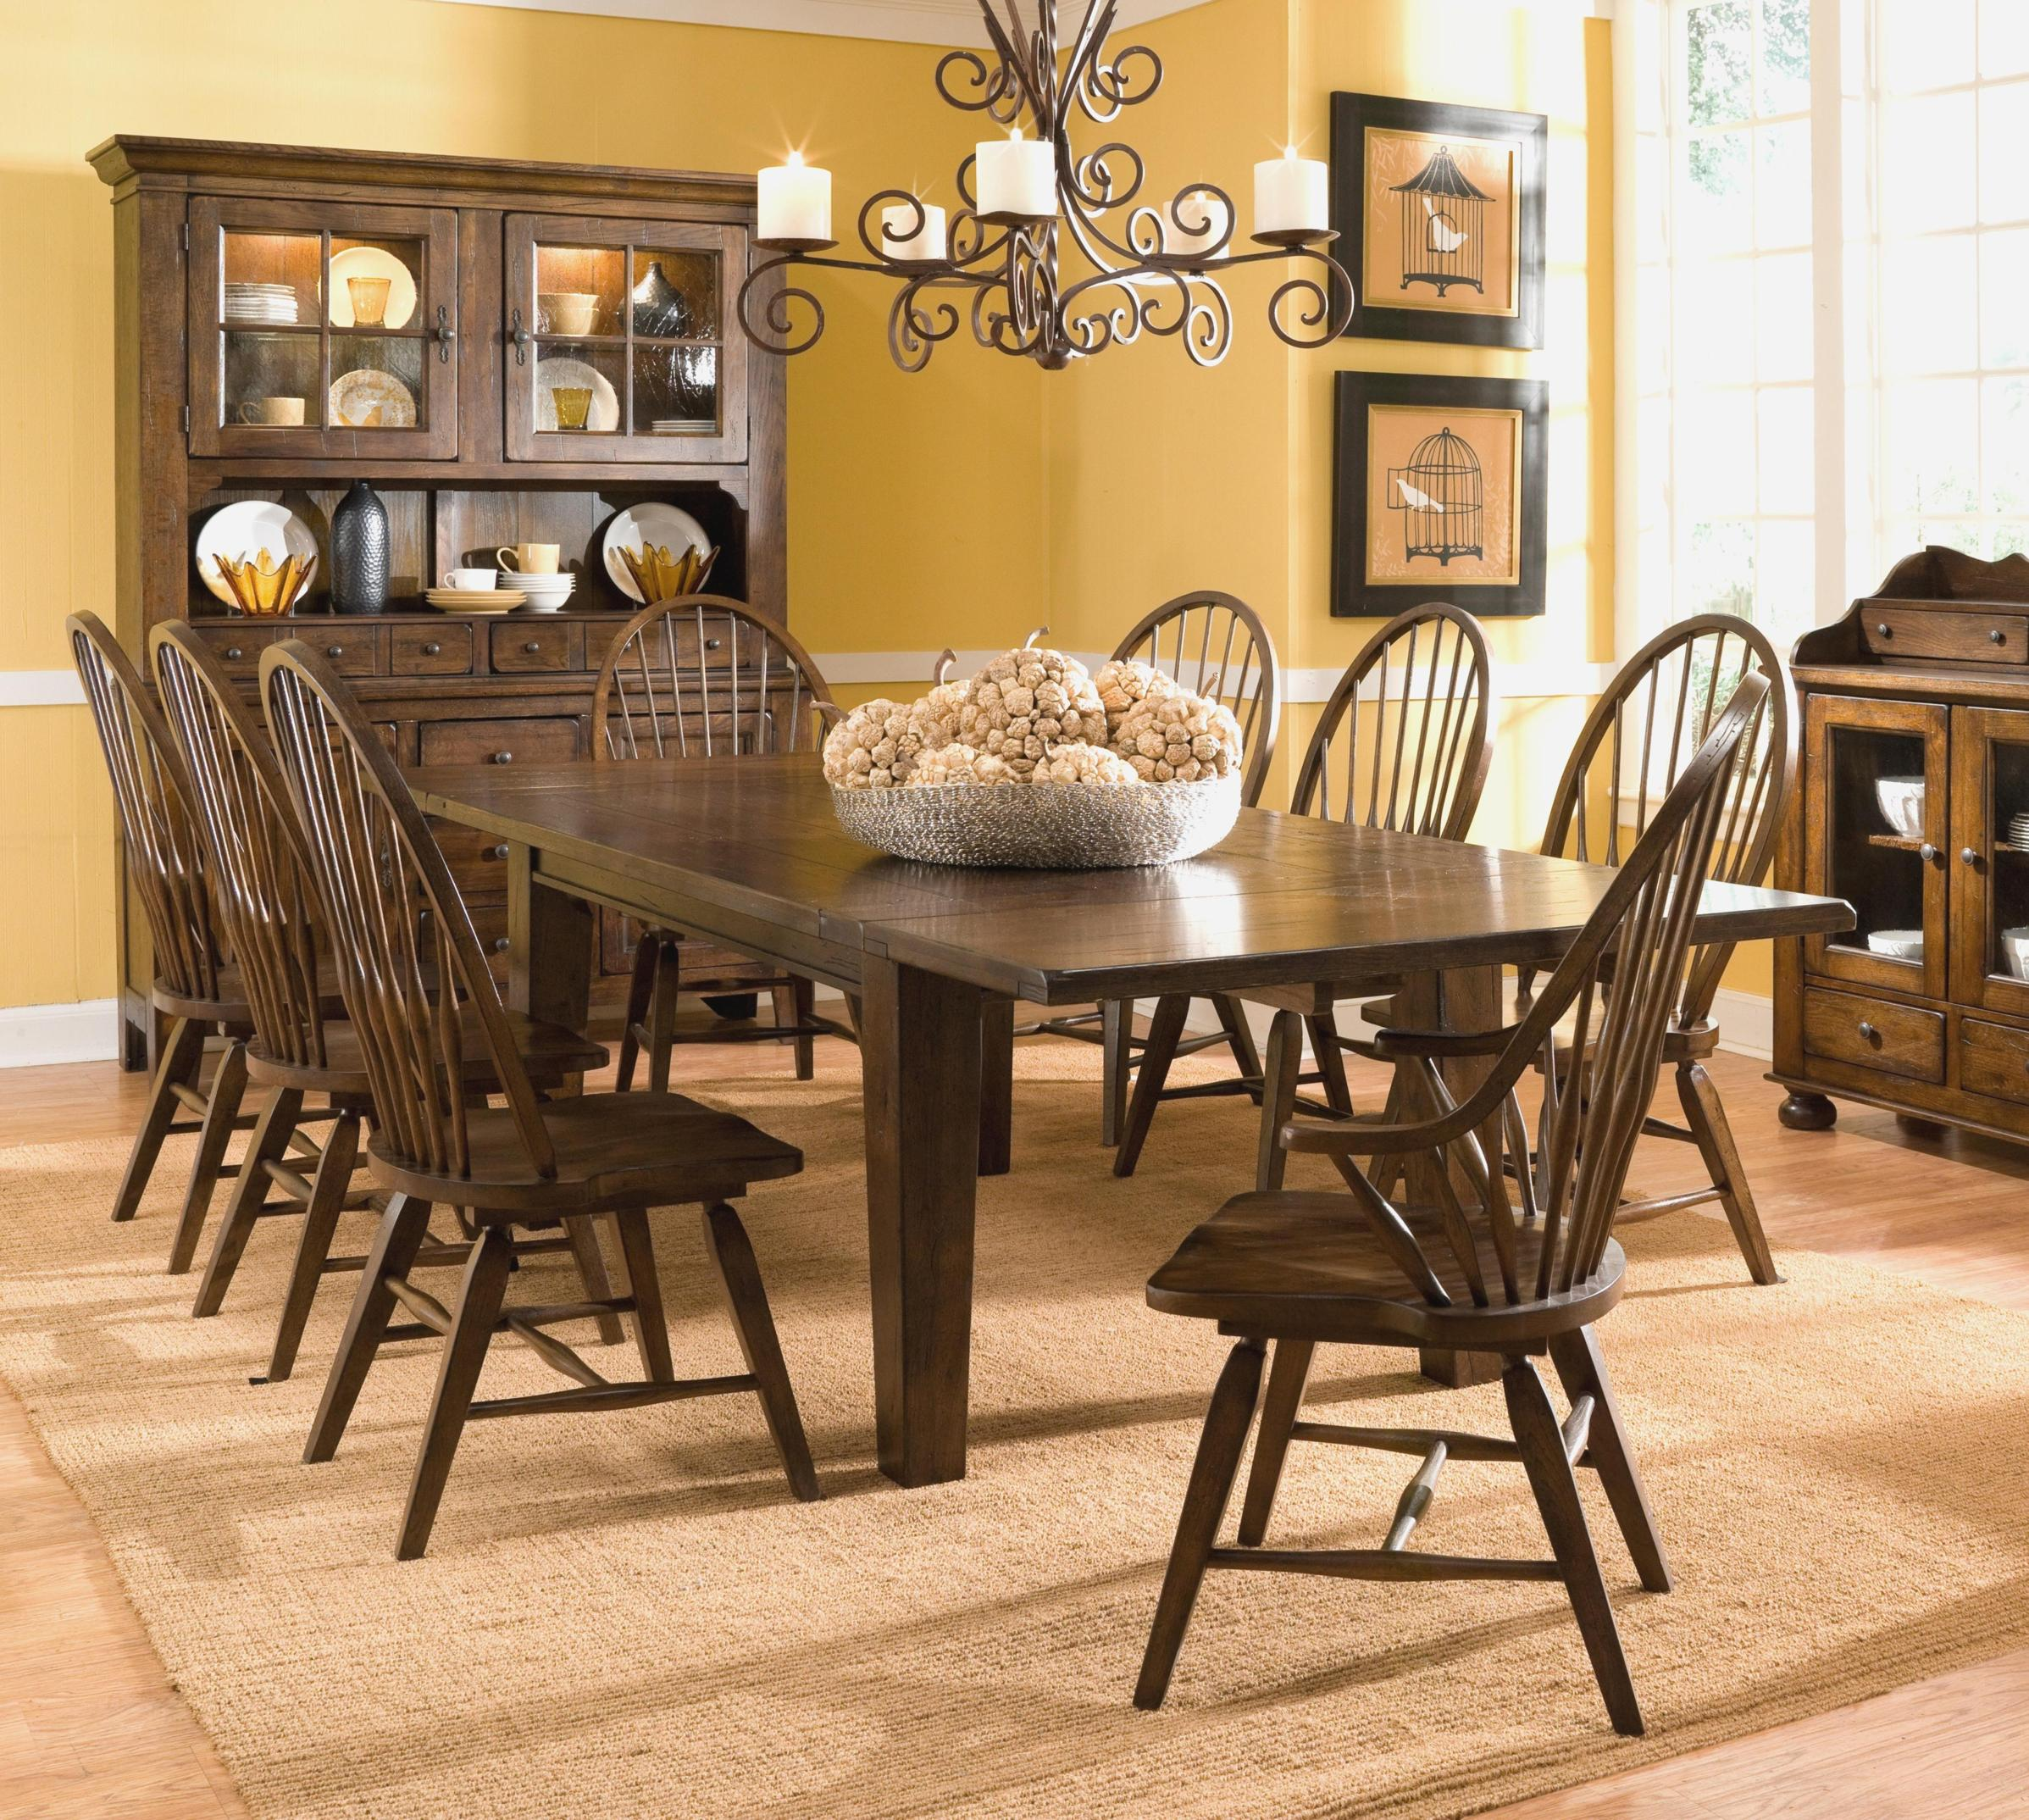 Best Cheap Rugs for Under Kitchen Table 15